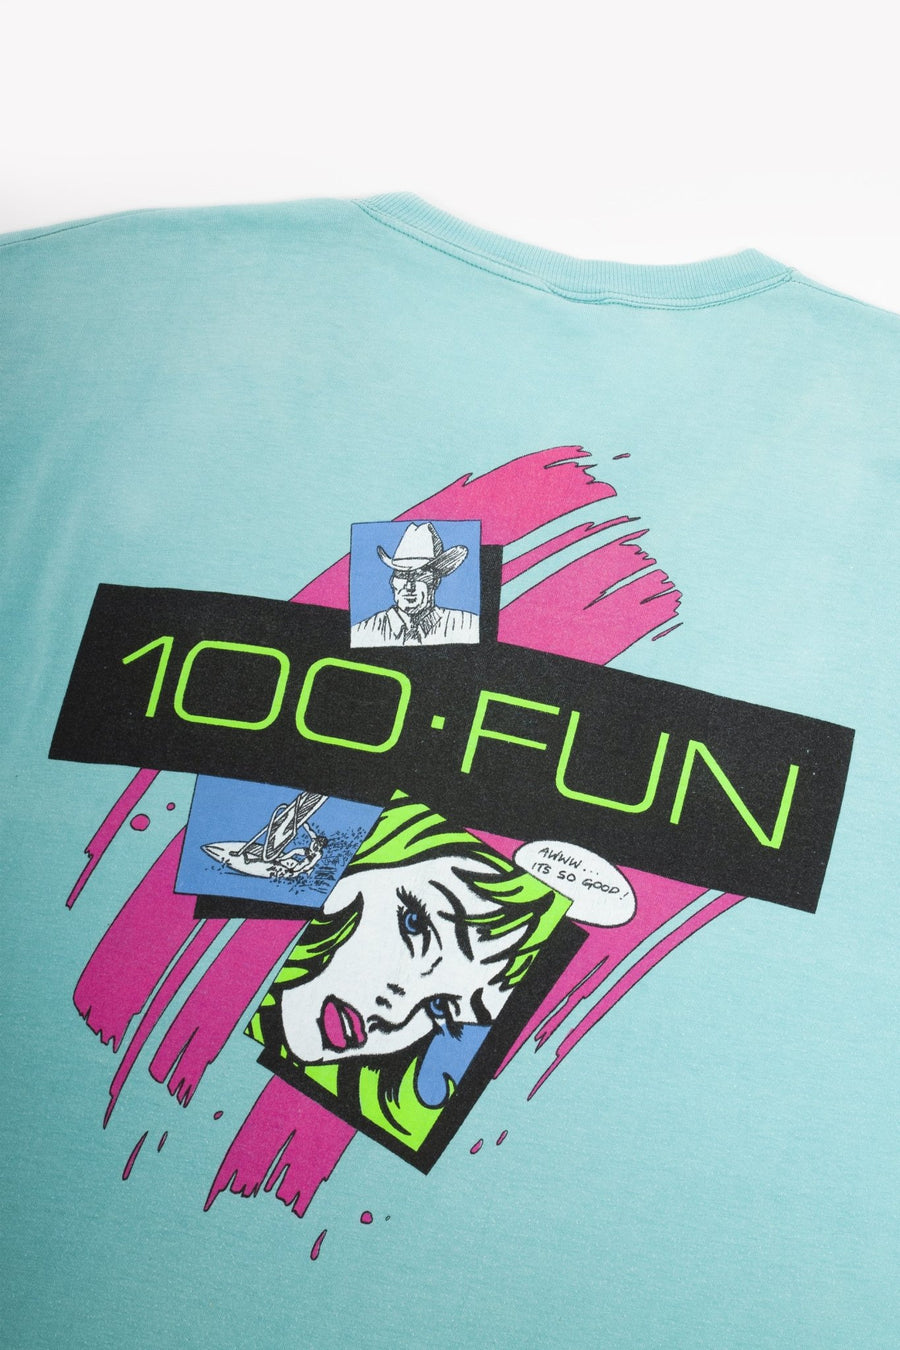 T-shirt 100% Fun Tarifa - WASTED PARIS